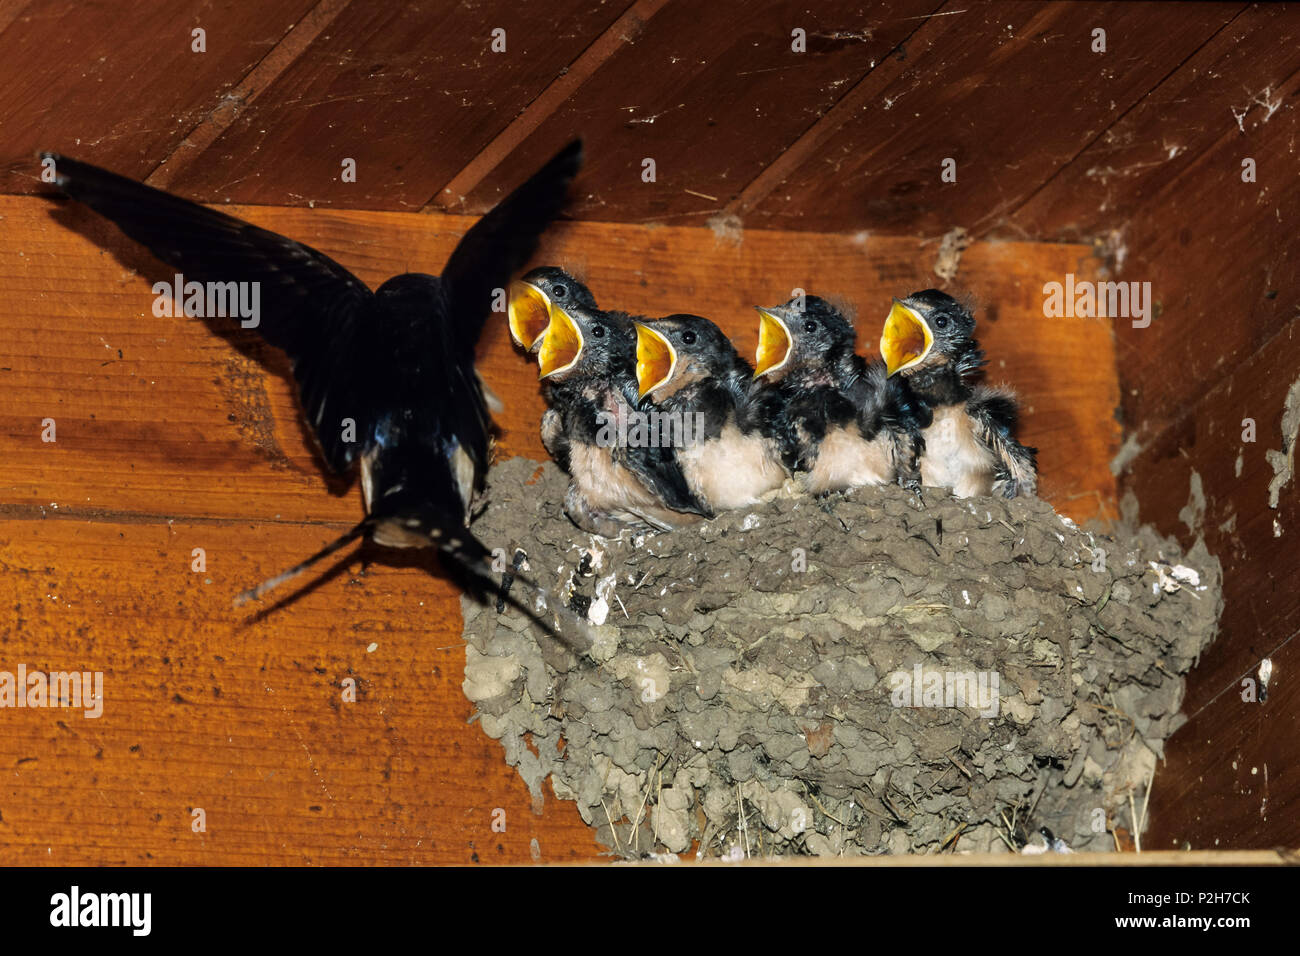 Swallow at nest, Hirundo rustica, Greece, Europe - Stock Image